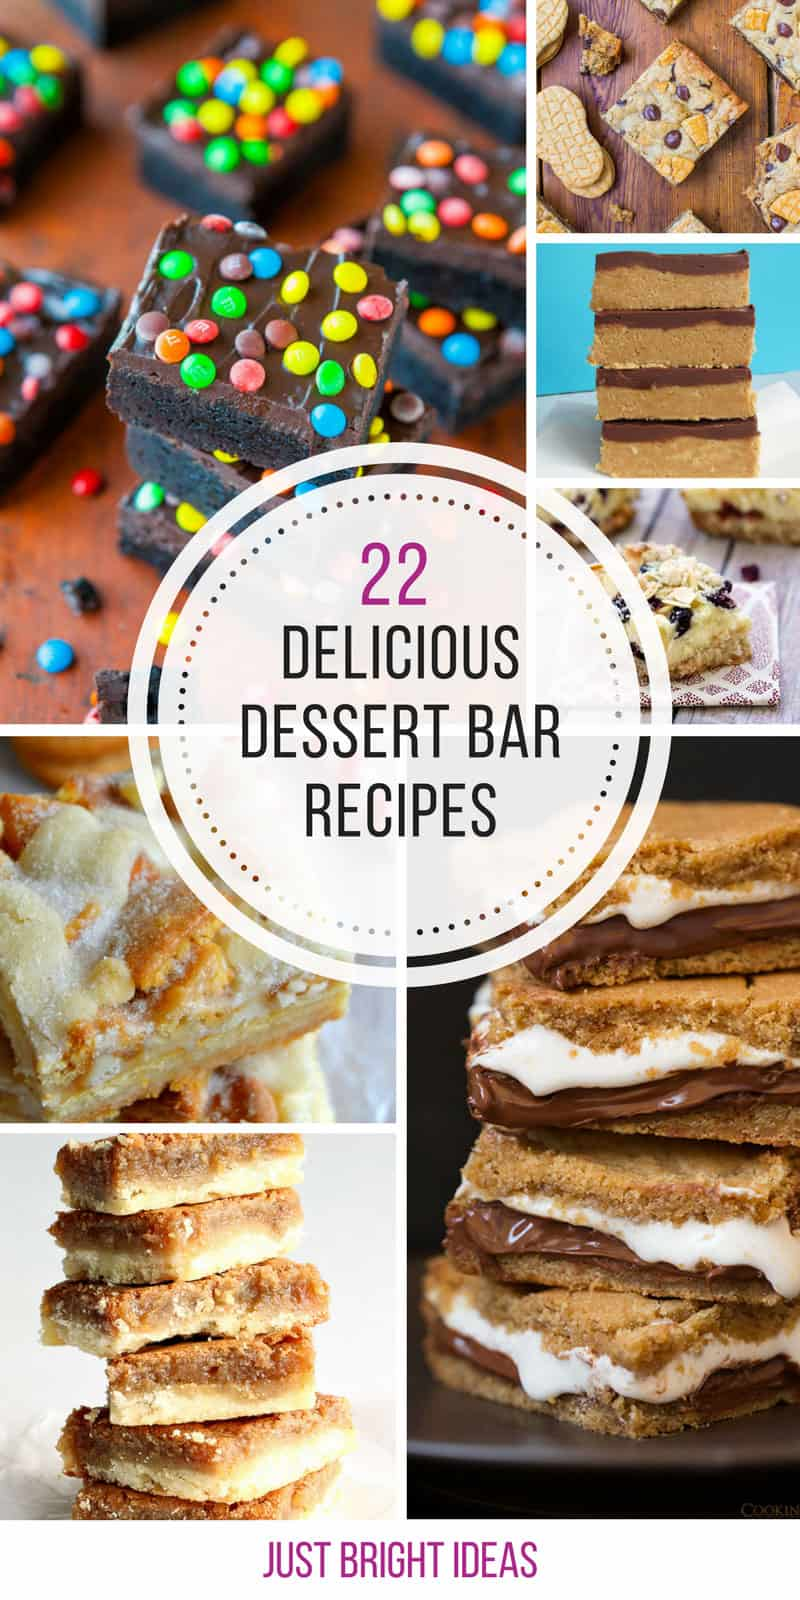 Who knew dessert bars could taste so good!